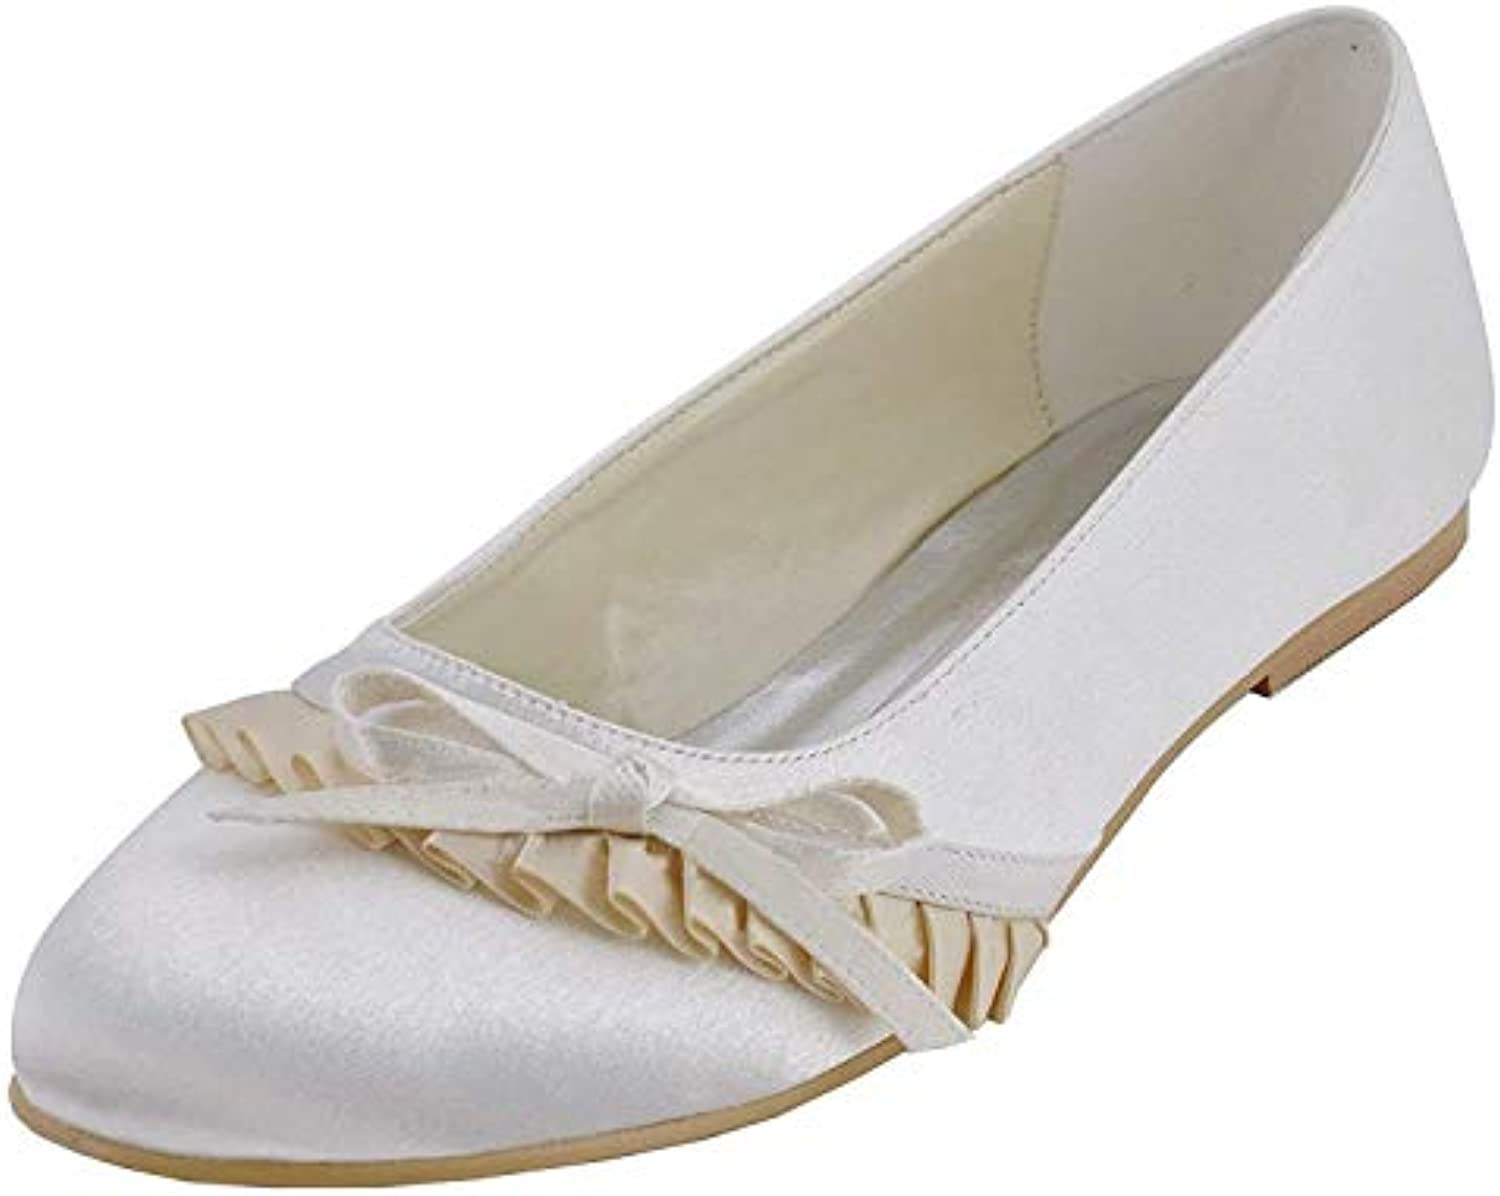 ZHRUI MZ596 donna Round Toe Ruffed Bridal Bridal Bridal Wedding Party Sera Avorio Satin Flats scarpe UK 7.5 (Coloreee   -, Dimensione... | Eccellente  Qualità